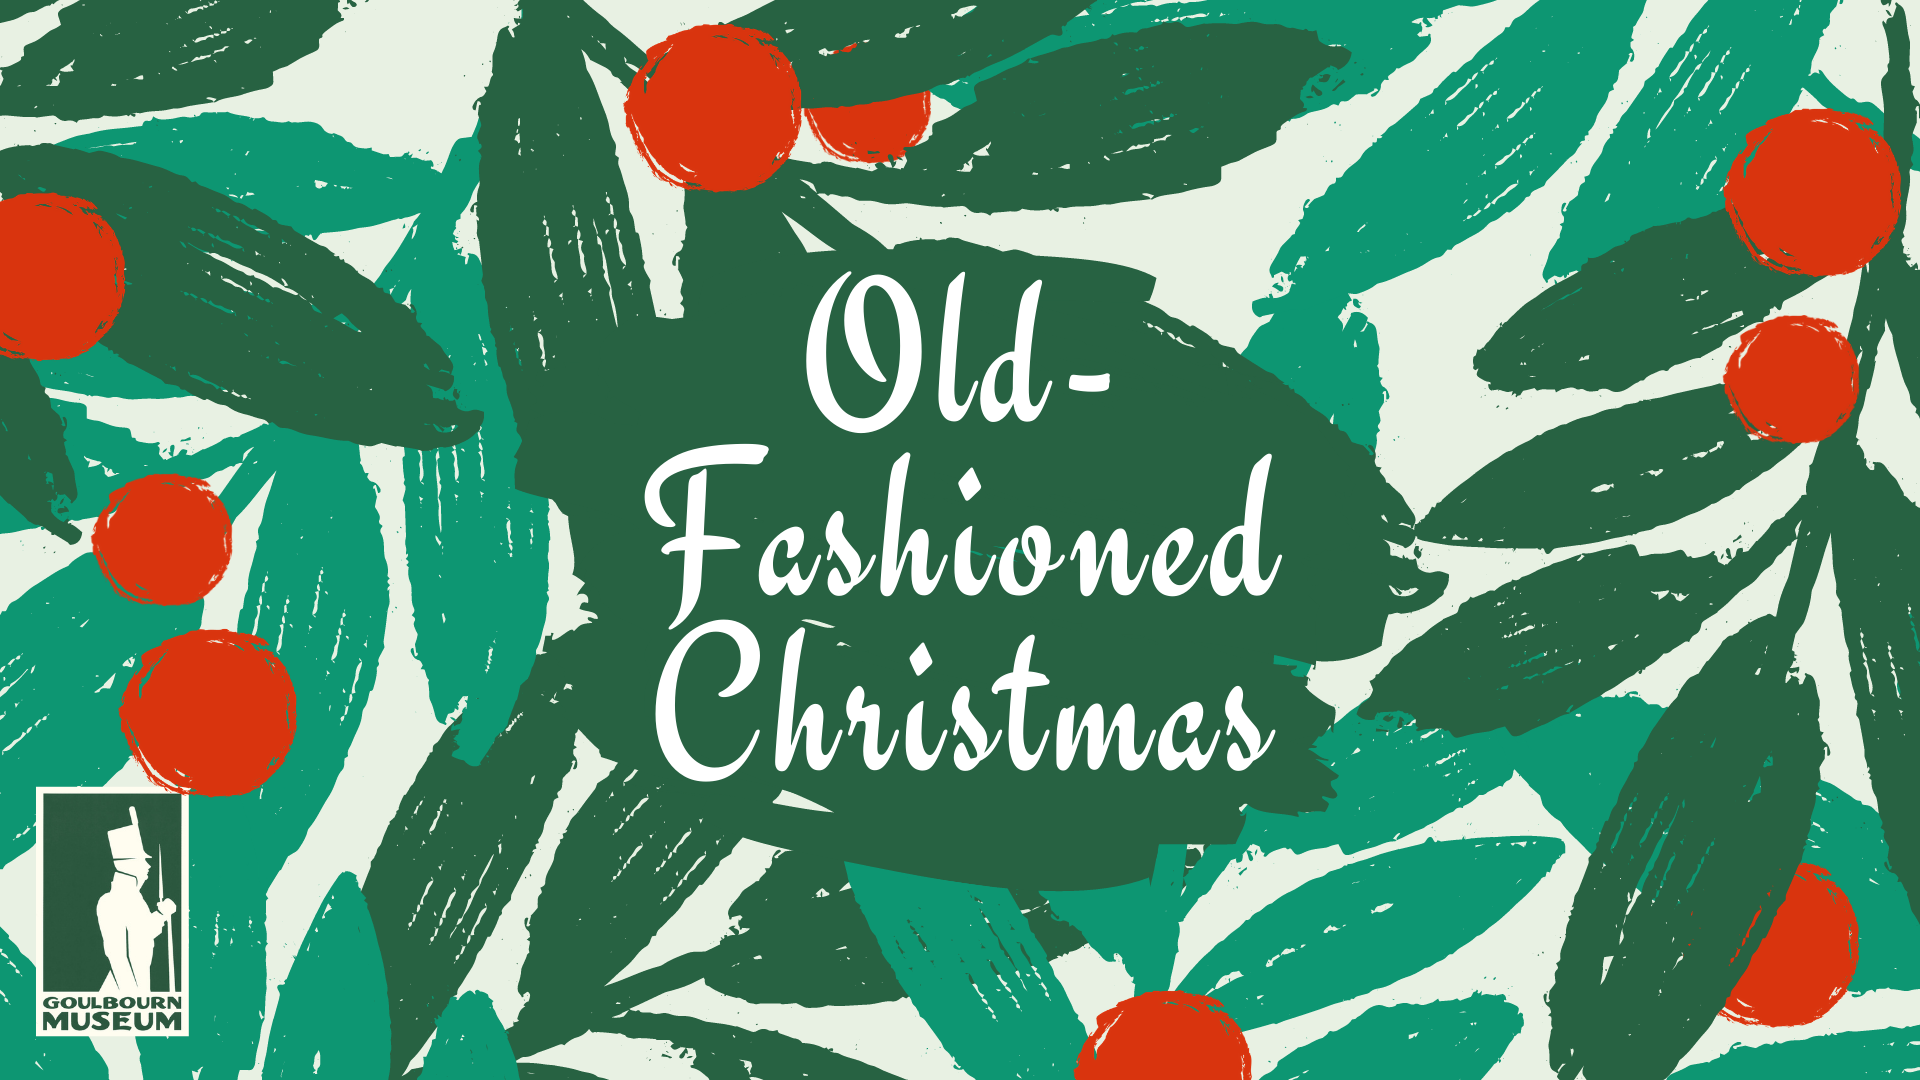 Old-Fashioned Christmas text with wreath background